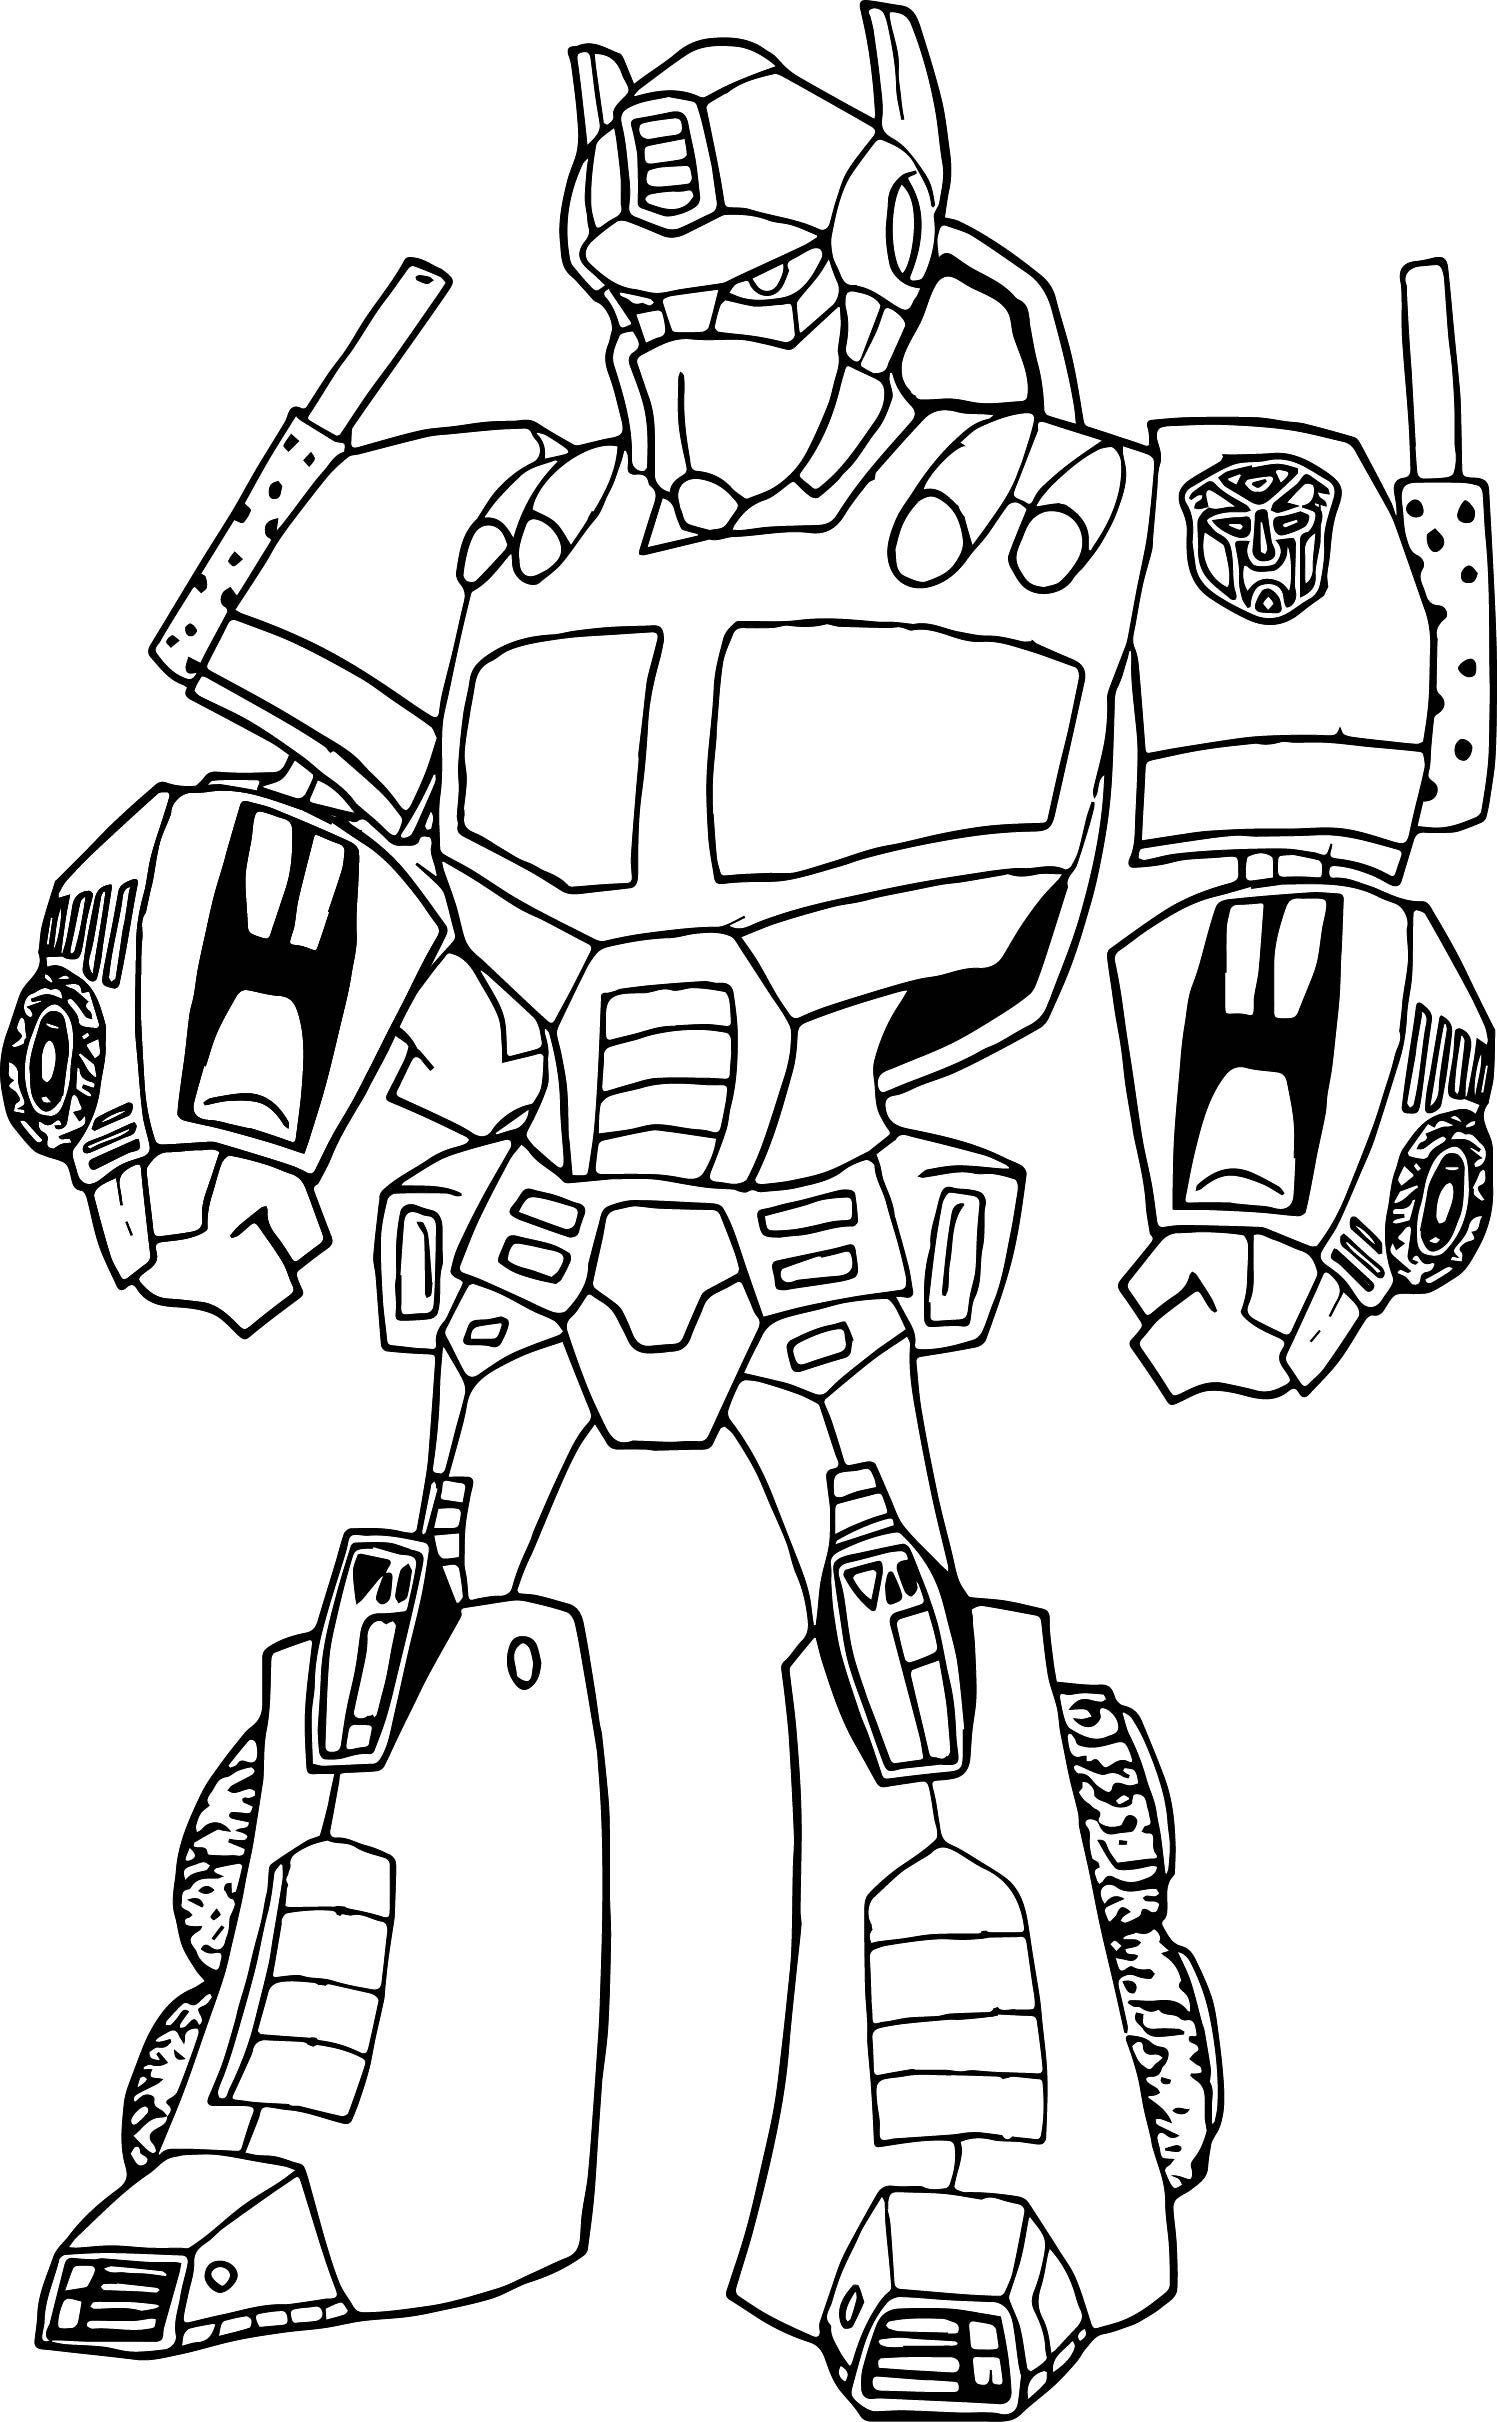 Cool Robot Coloring Pages At Getcolorings